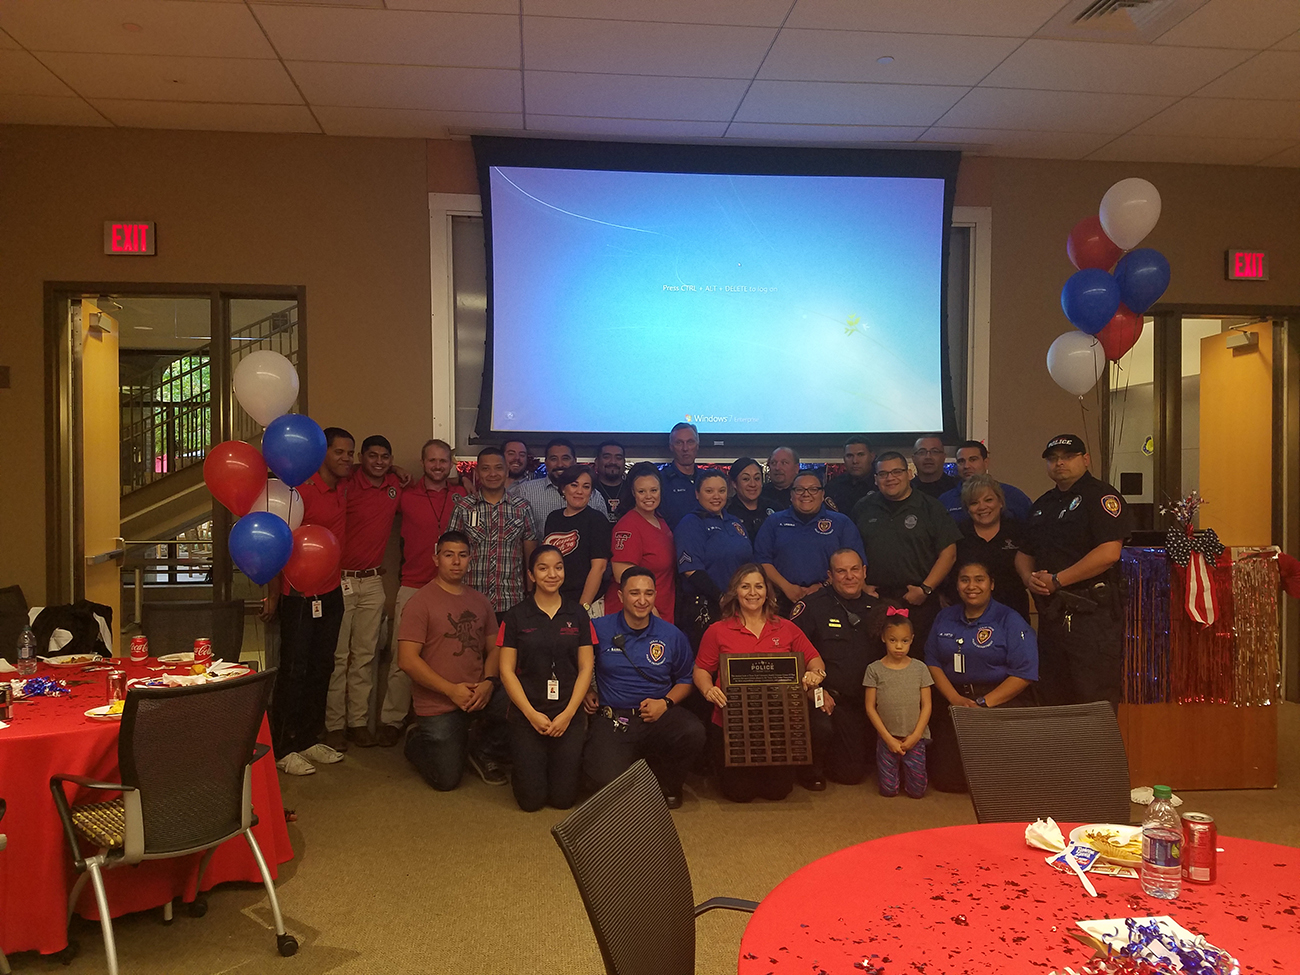 Students Organize Appreciation Event for Texas Tech PD